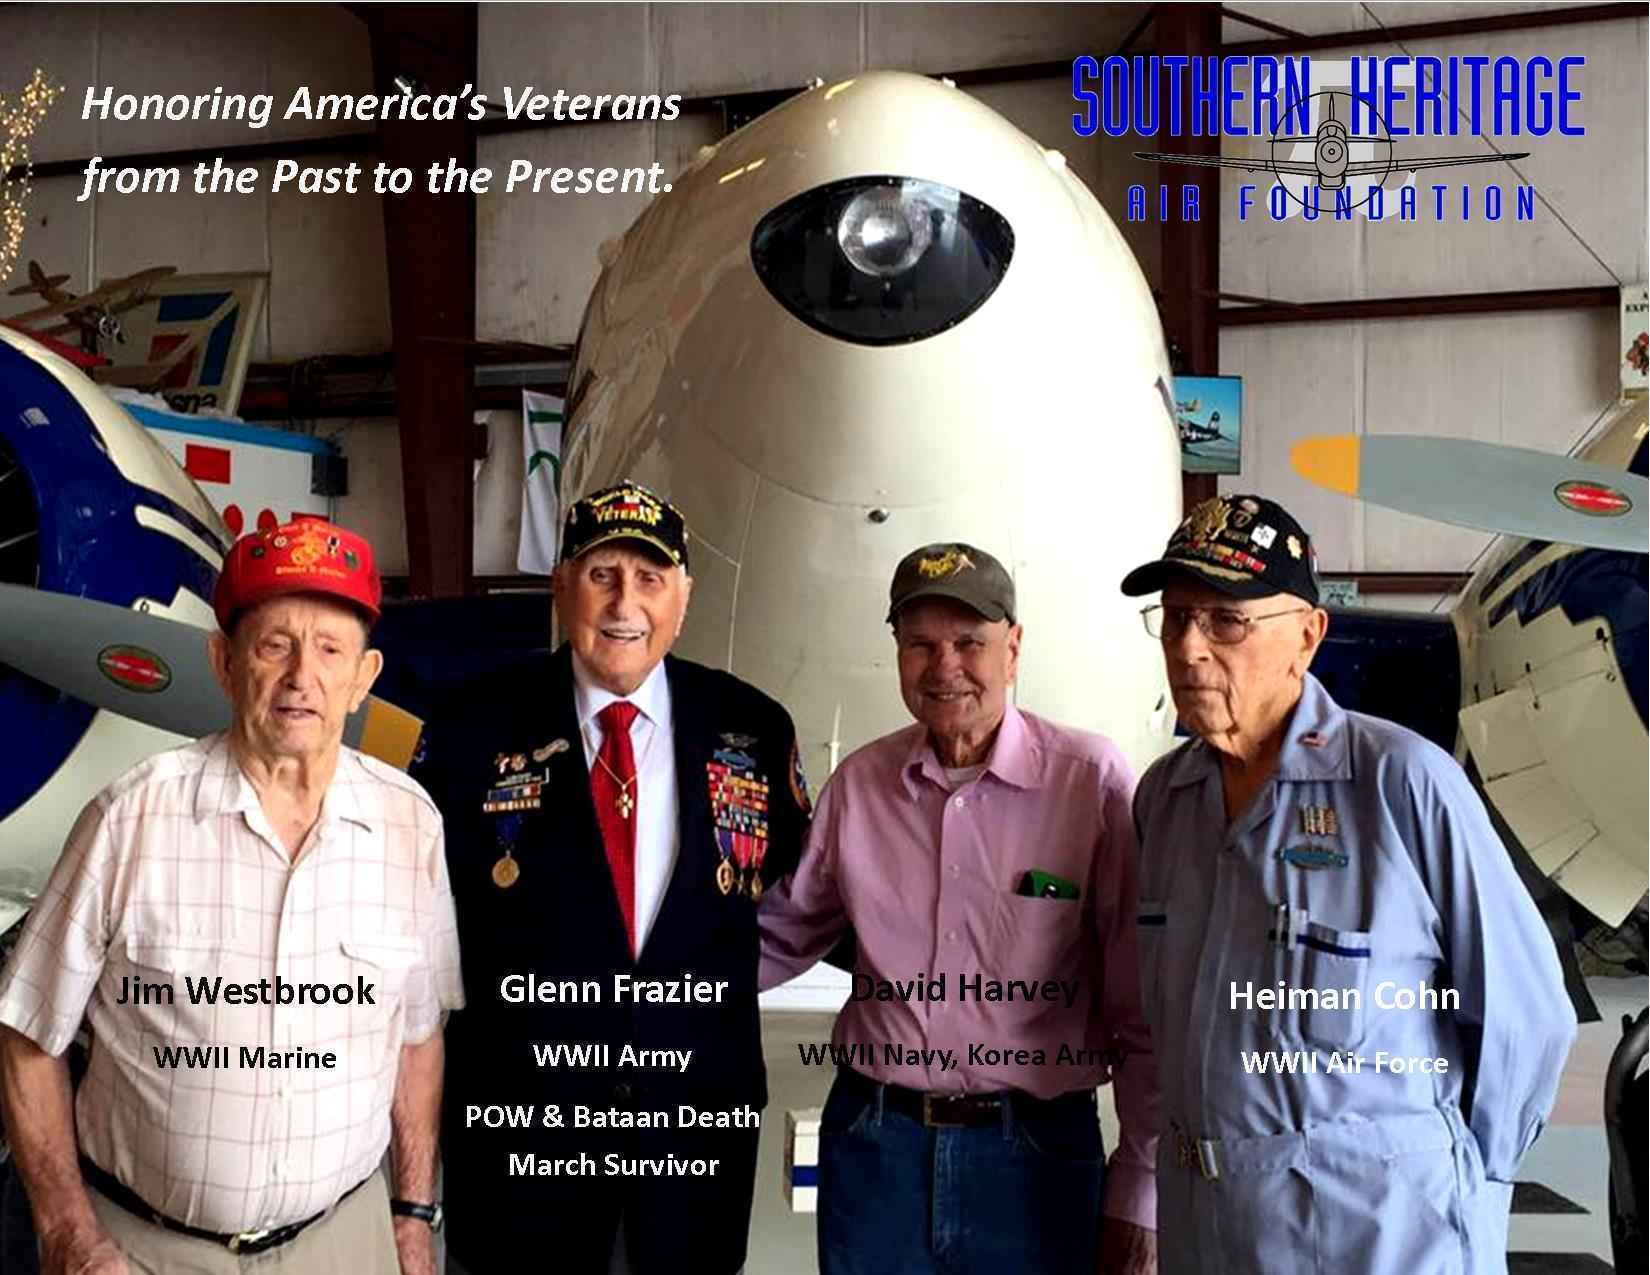 Preserving the history of local and regional WWII Veterans and aviation history image